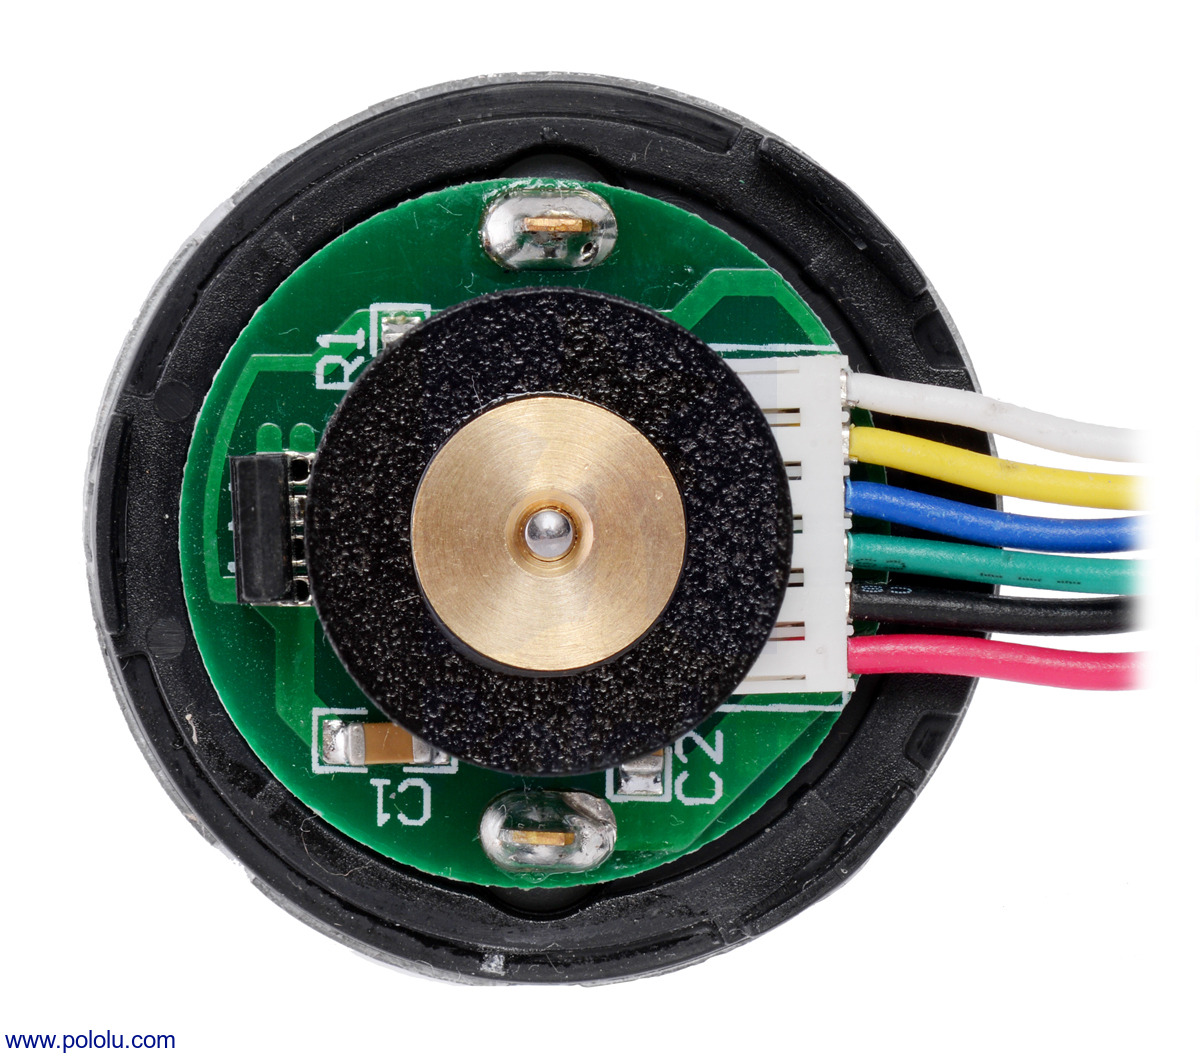 37d mm metal gearmotor with 64 cpr encoder with end cap removed  [ 1200 x 1059 Pixel ]